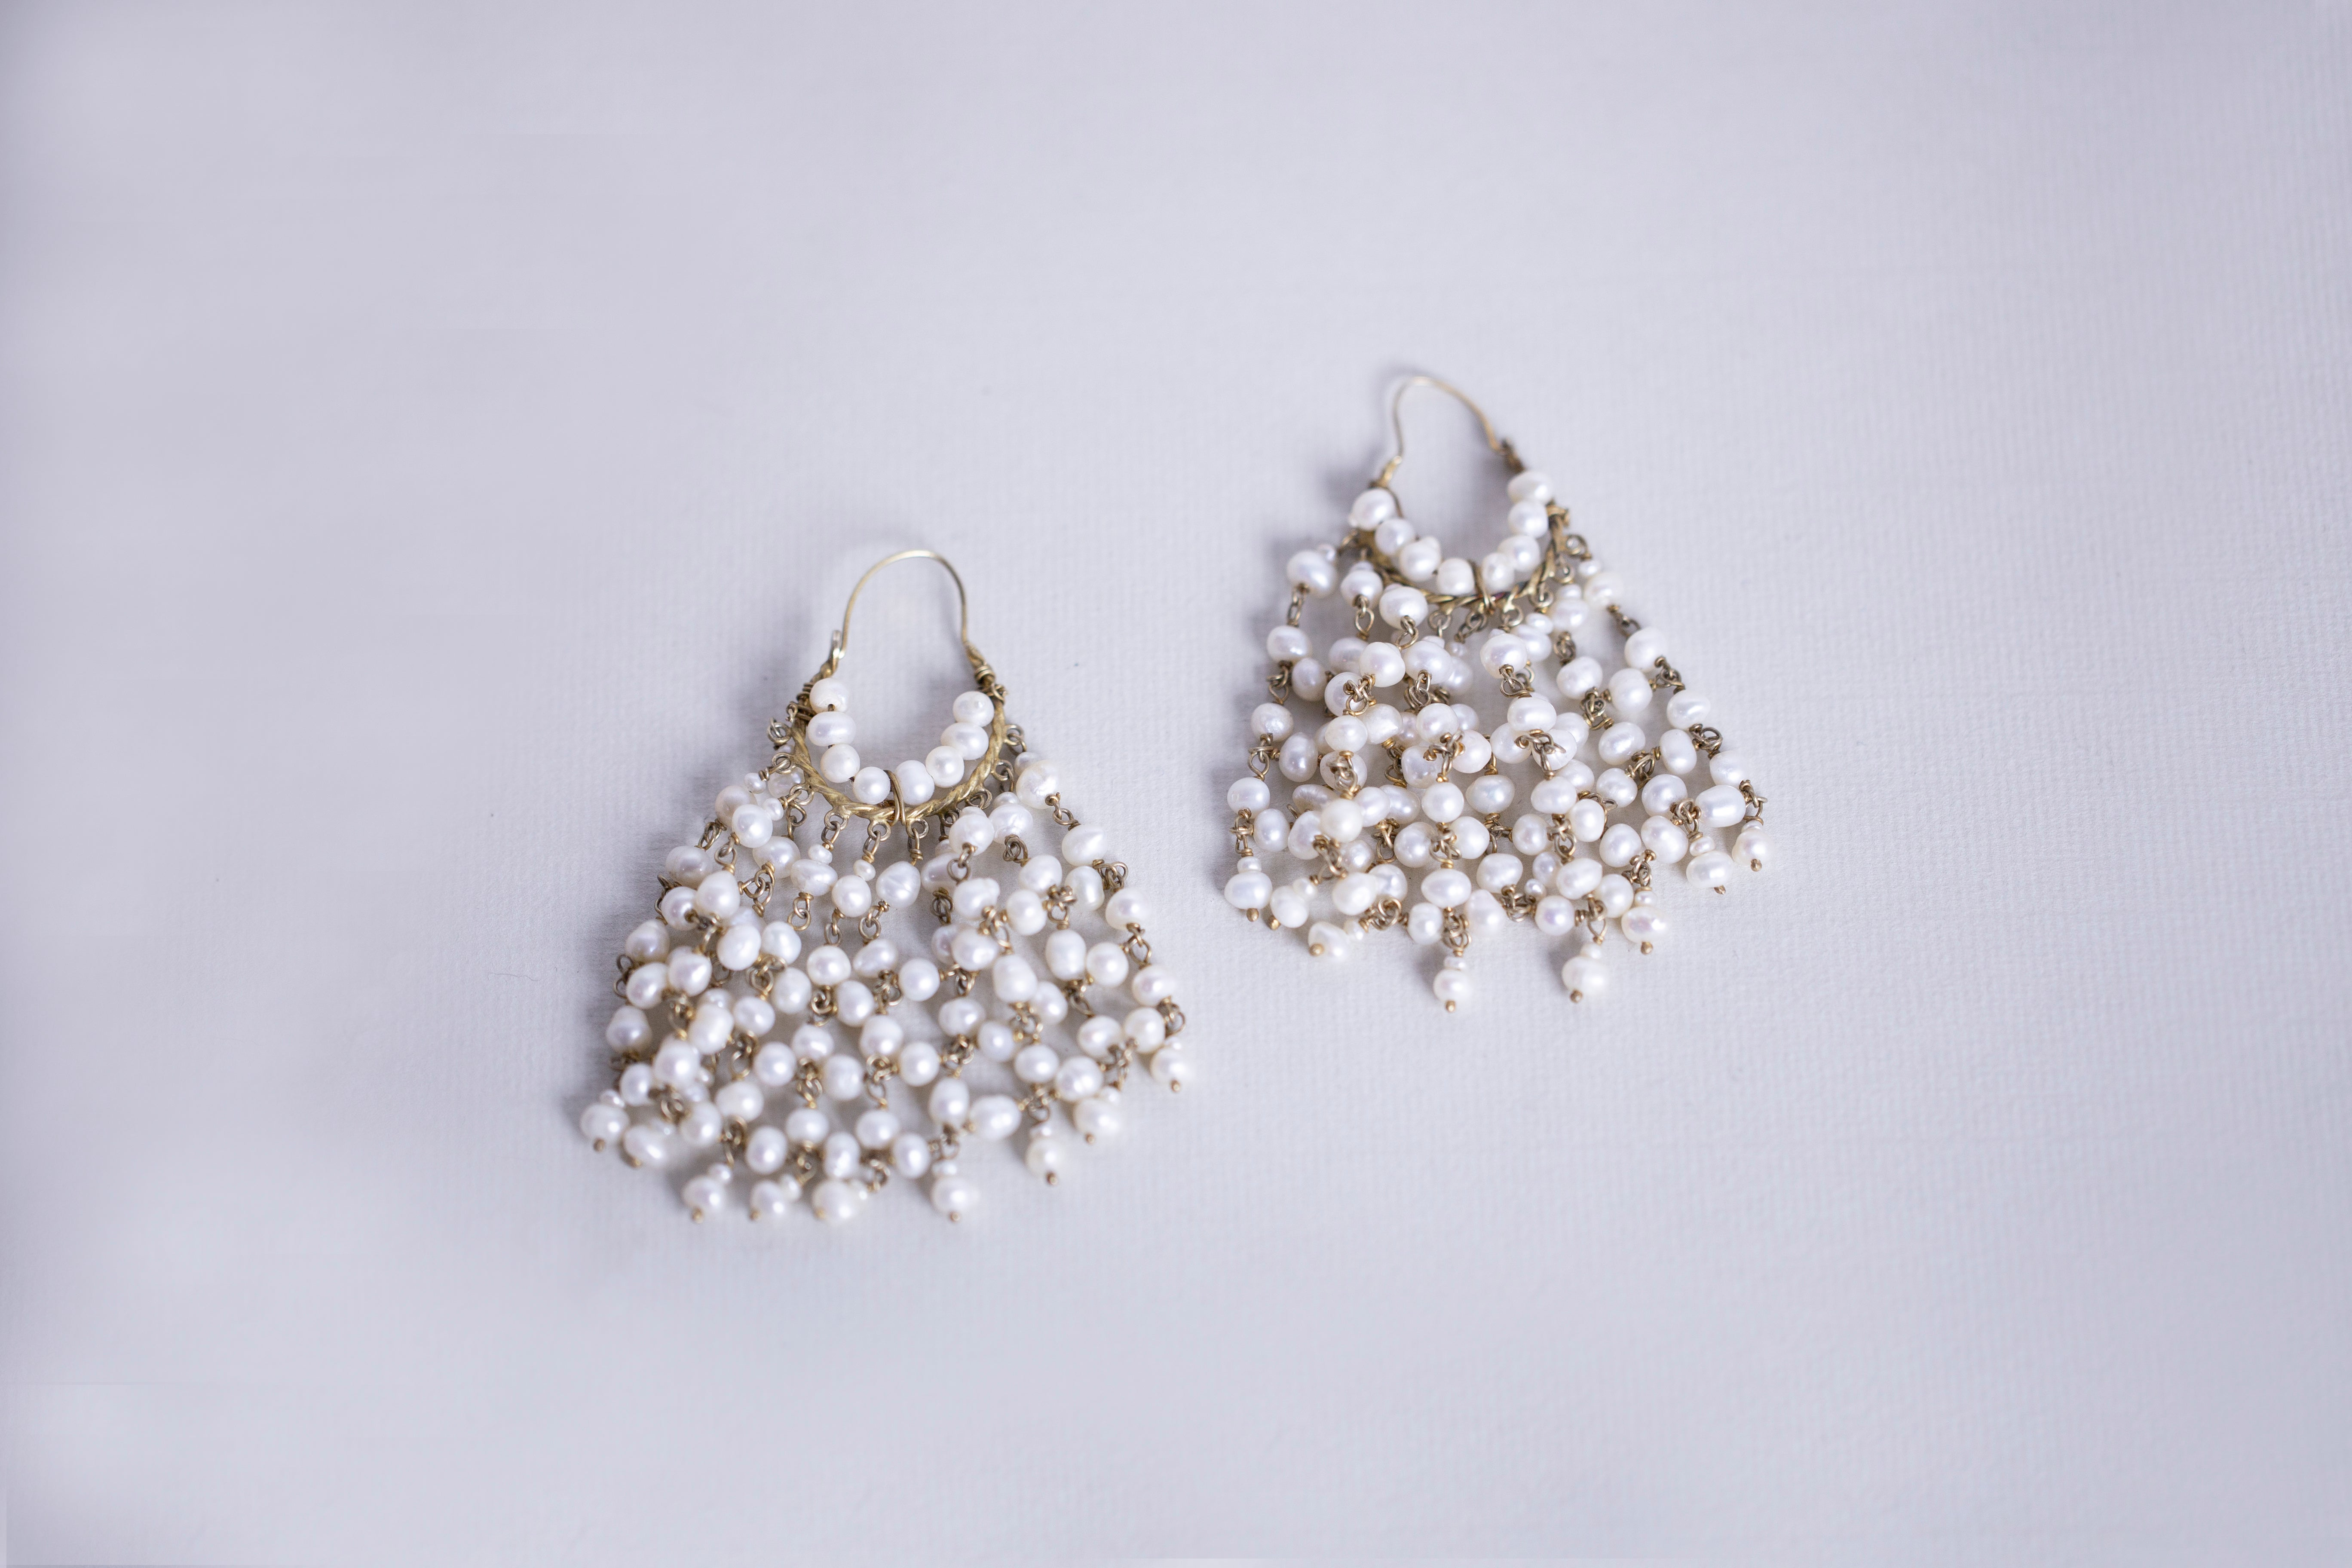 Gold Plated Wire Earrings with Pearls